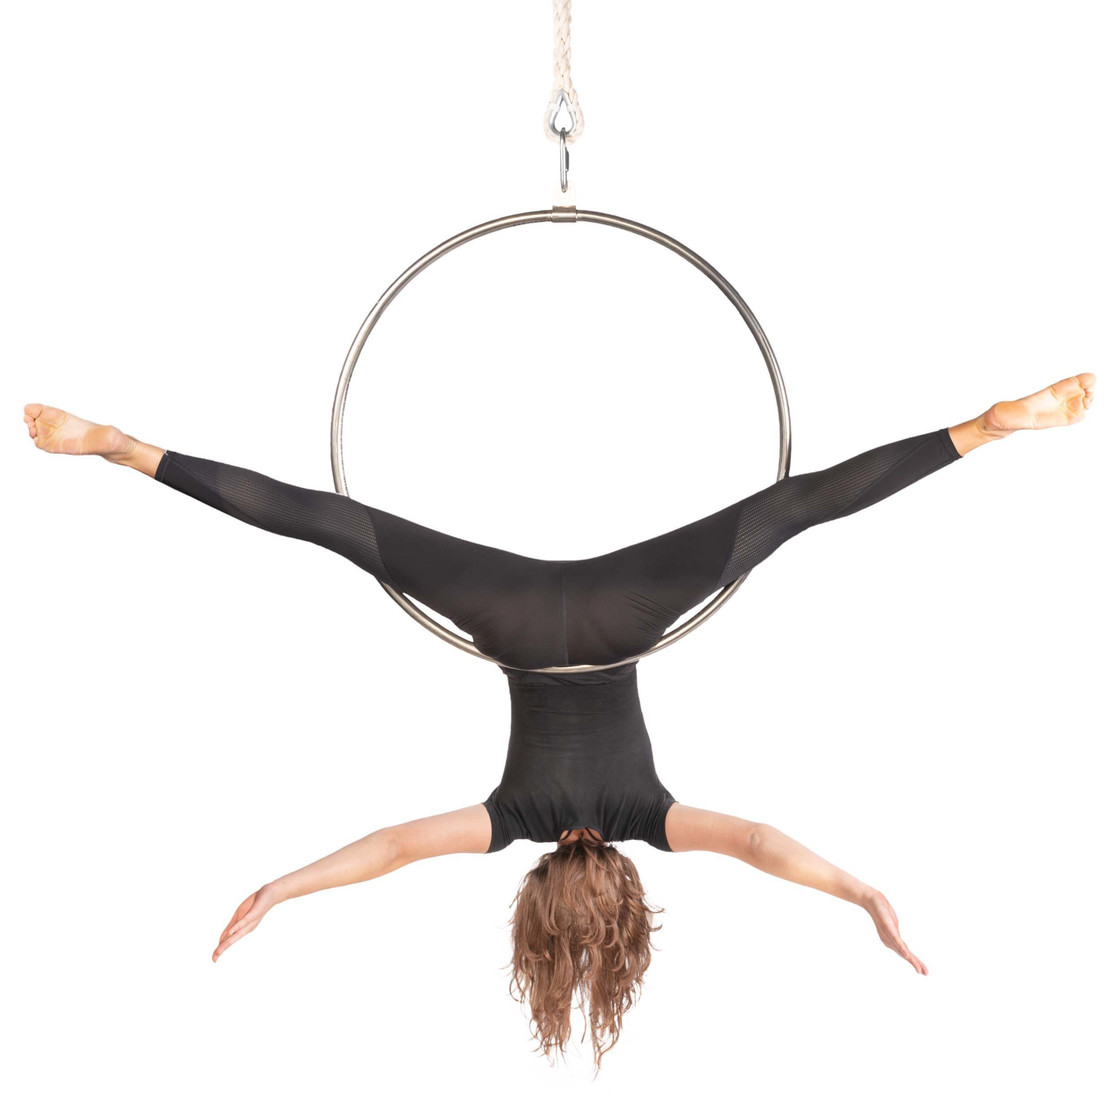 Stainless Steel Aerial Hoop with 1 Suspension Point, 184,66 €